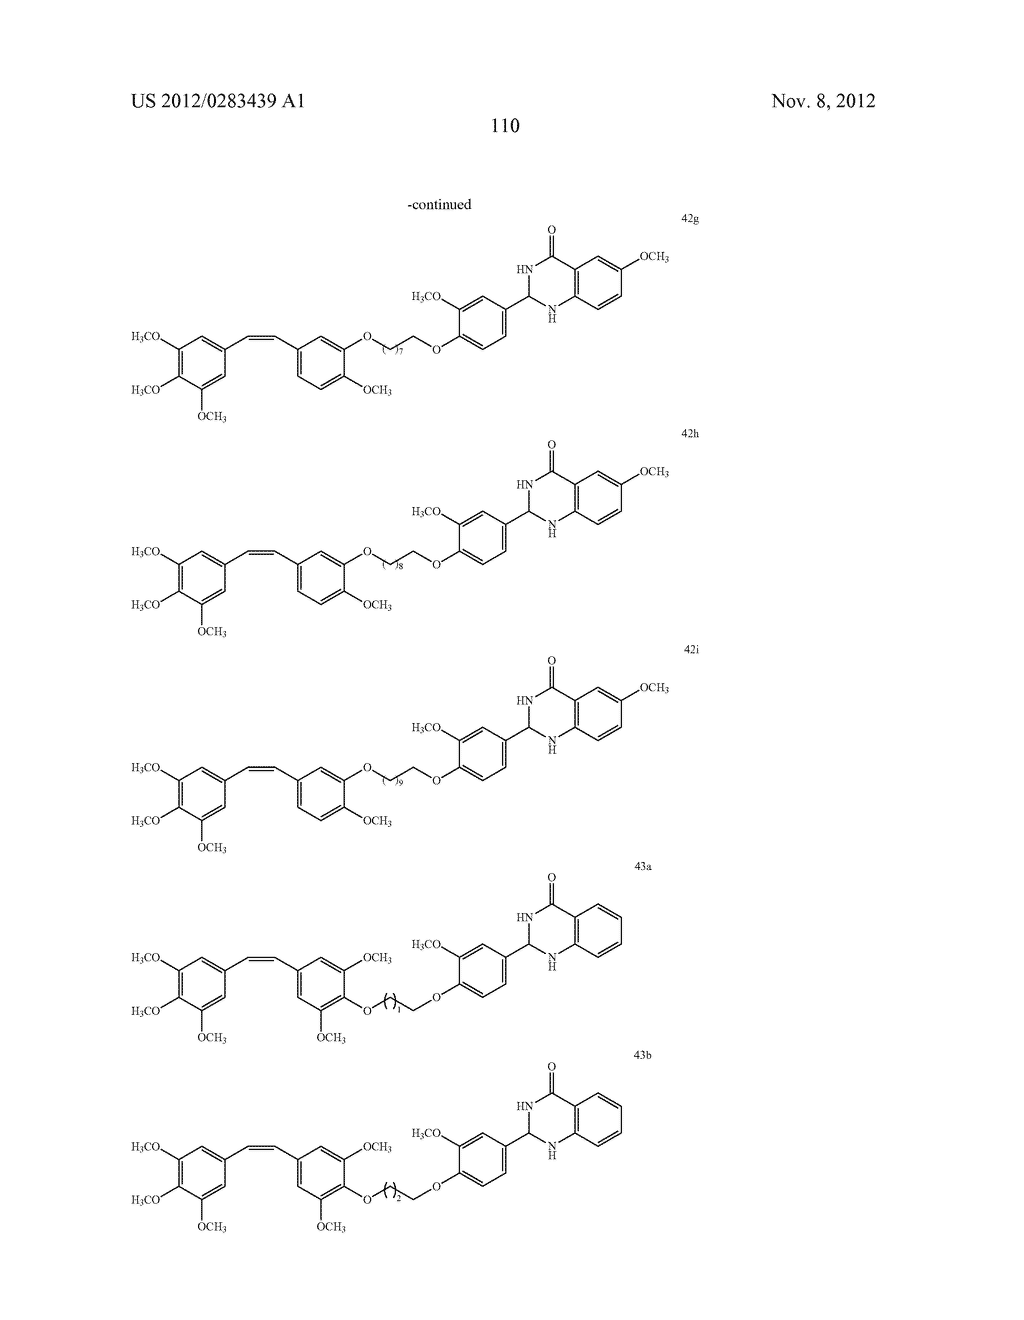 ISOXAZOLE/ISOXAZOLINE/COMBRETASTATIN LINKED DIHYDROQUINAZOLINONE HYBRIDS     AS POTENTIAL ANTICANCER AGENTS AND PROCESS FOR THE PREPARATION THEREOF - diagram, schematic, and image 112